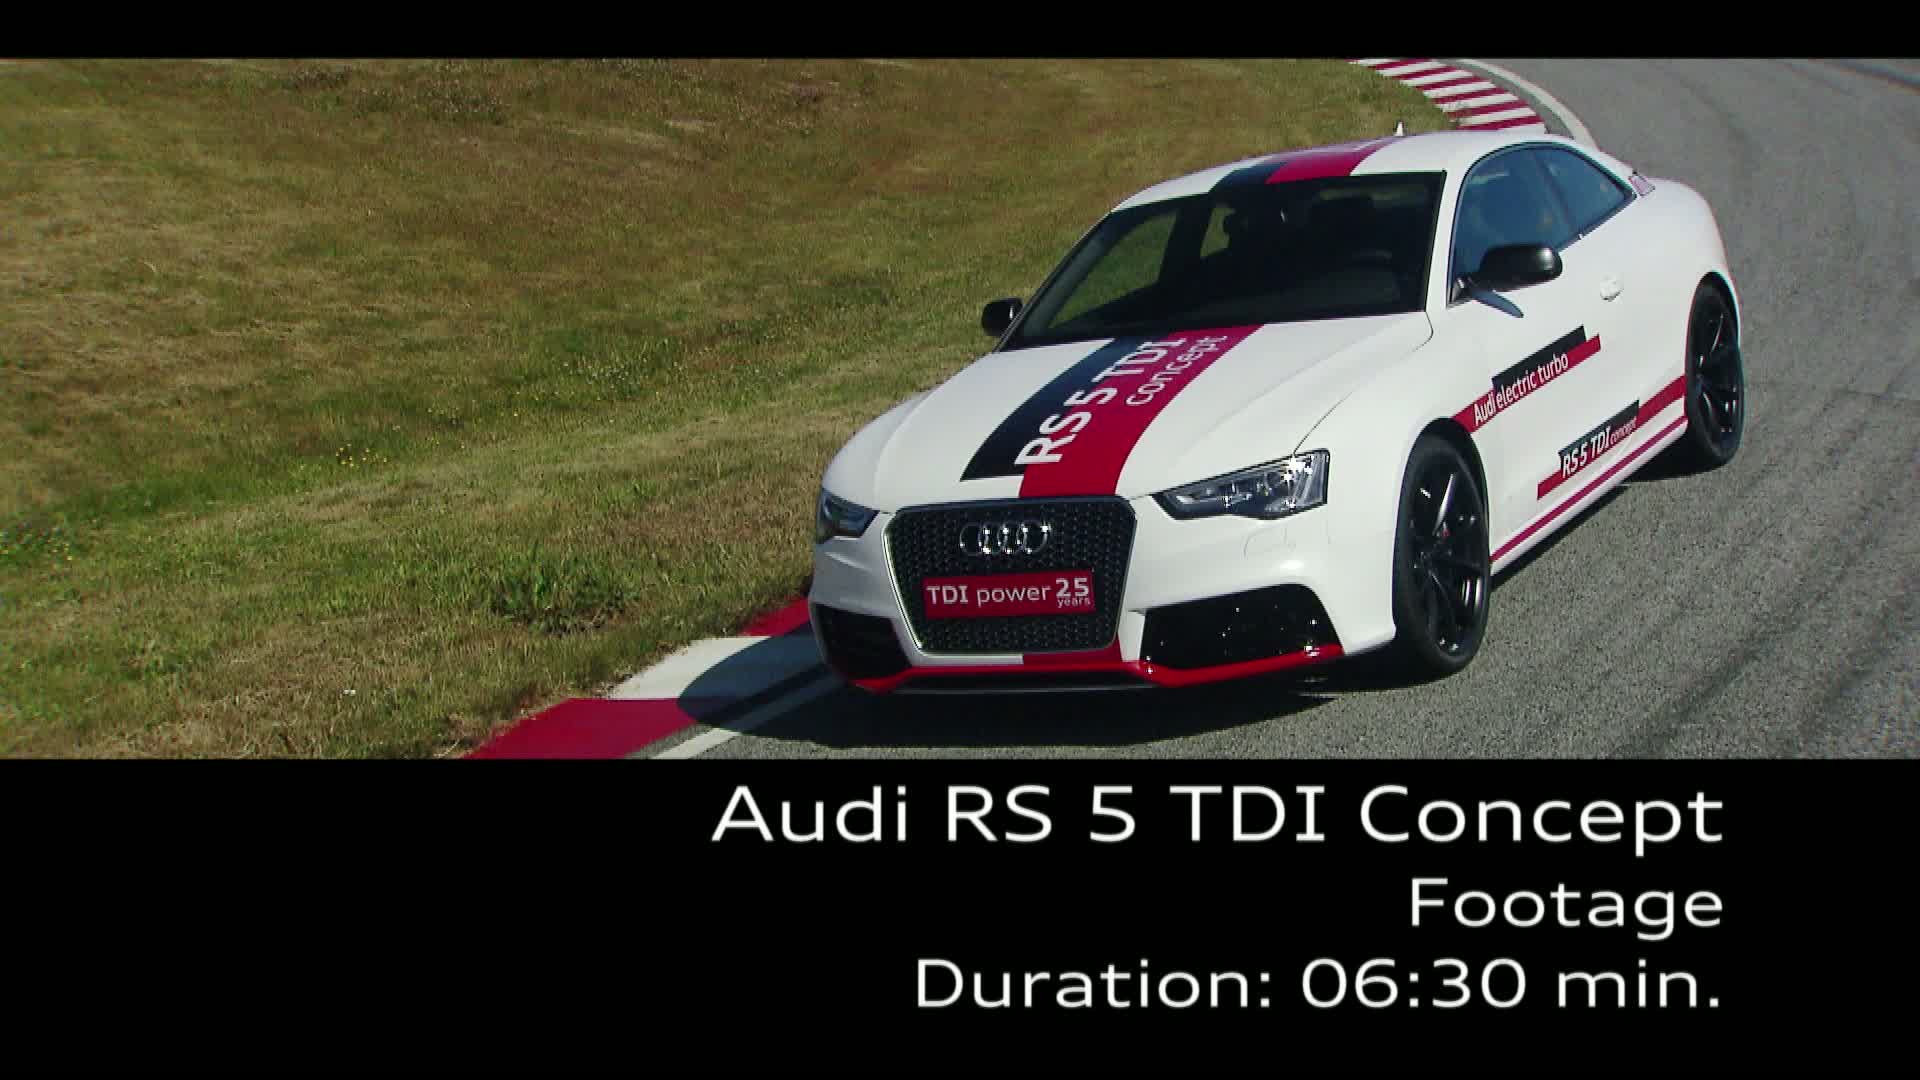 The Audi RS 5 TDI Concept